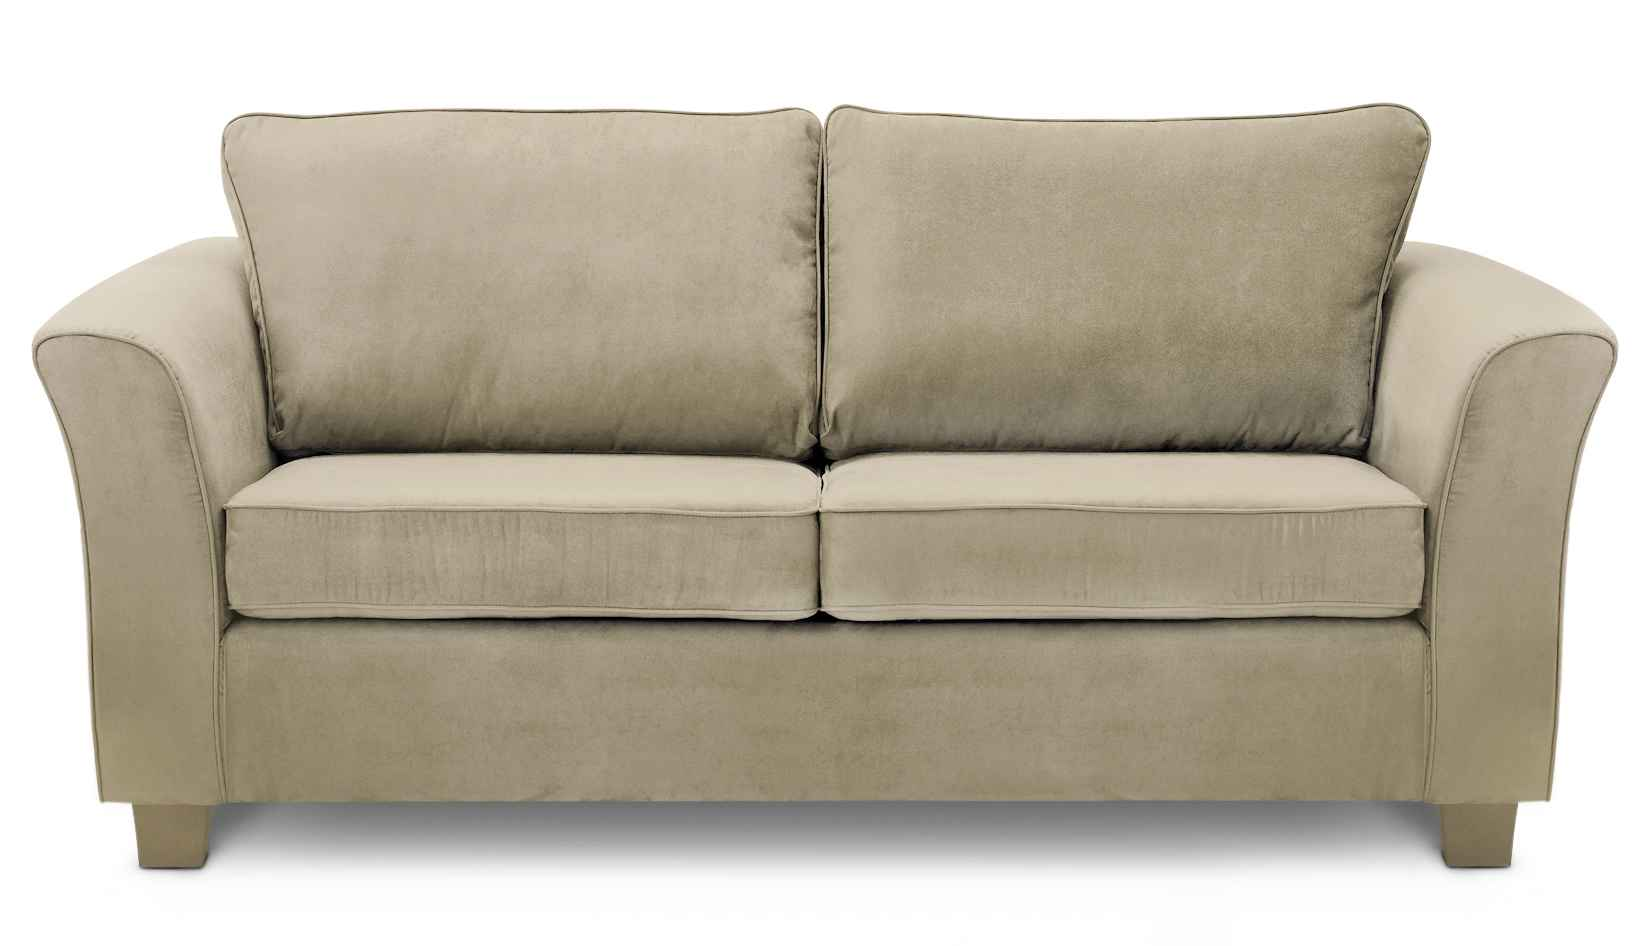 Cheap furniture feel the home for Furniture sofa sale